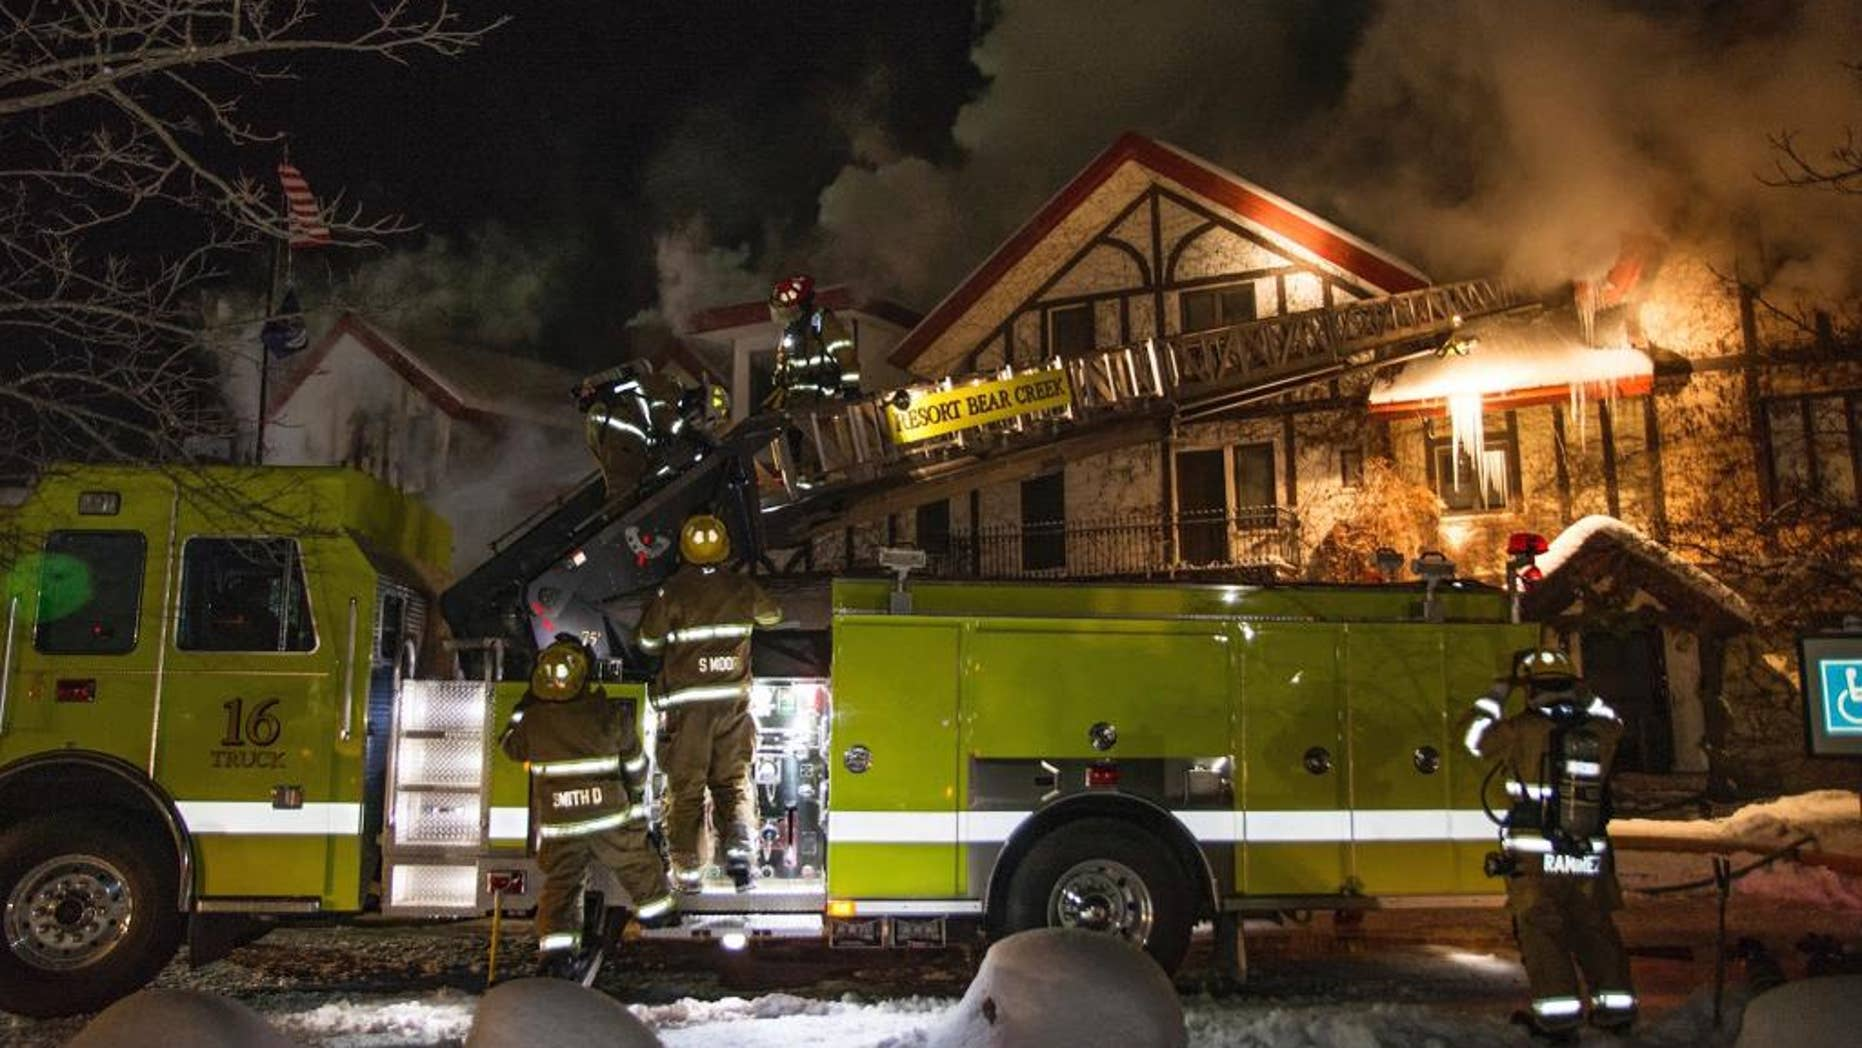 """Firefighters extinguish a blaze Sunday, Dec. 11, 2016, at Boyne Highlands Resort in Harbor Springs, Mich. The resort called it a """"significant structure fire"""" early Sunday.  (Alex Childress Photo via AP)"""